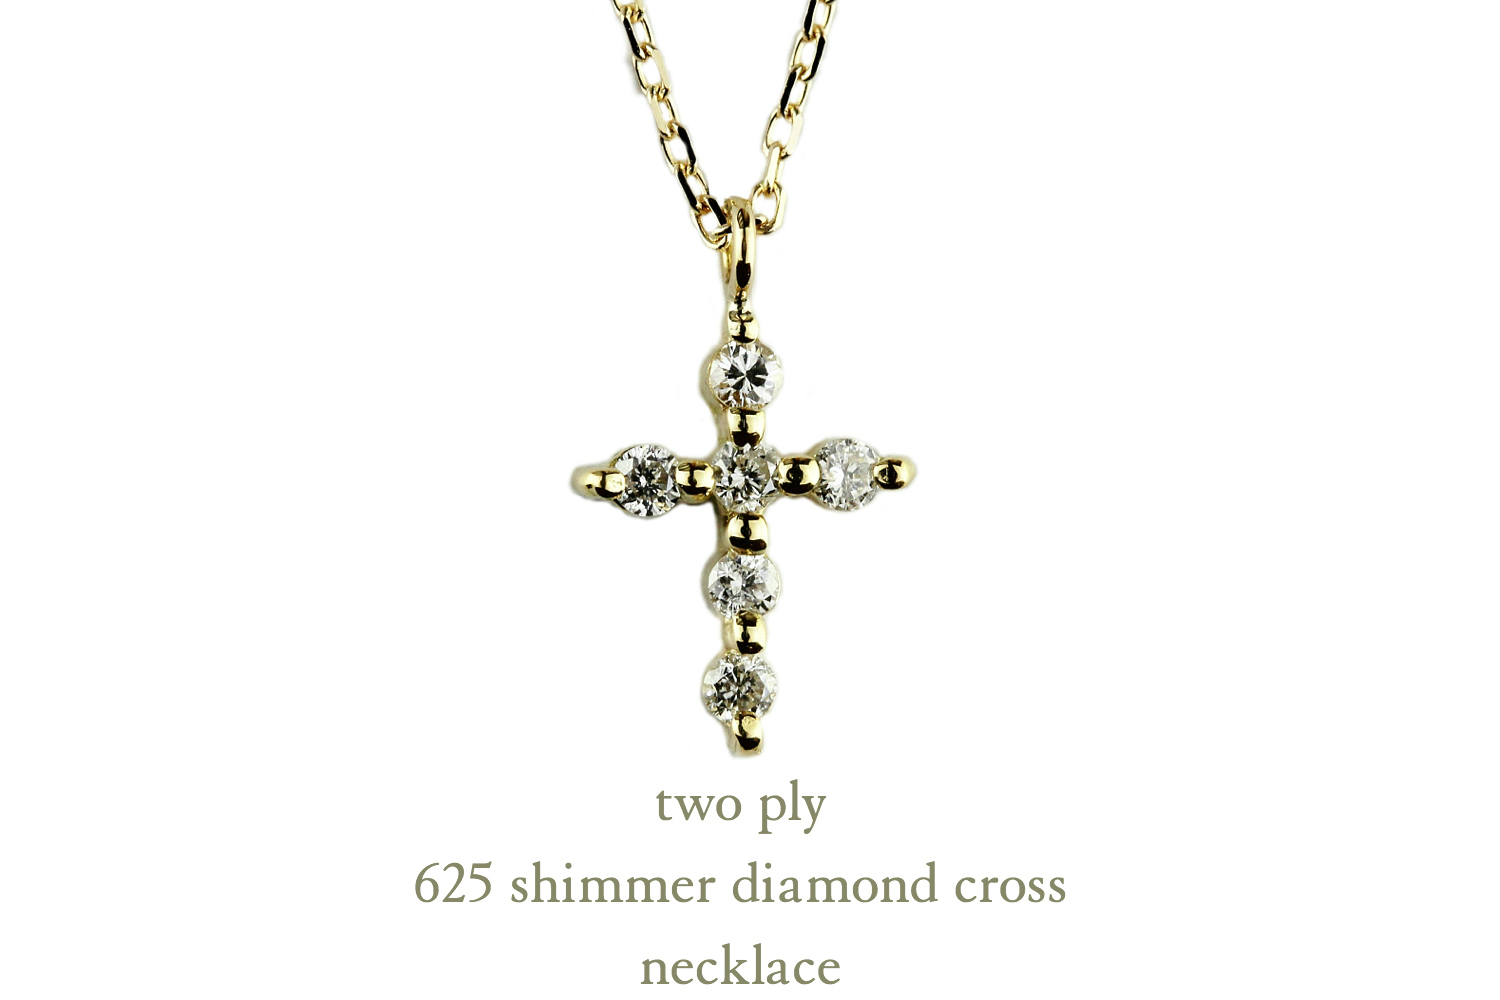 Two ply 625 shimmer diamond cross necklace k18yg two ply 625 shimmer diamond cross necklace k18yg 18 mozeypictures Gallery